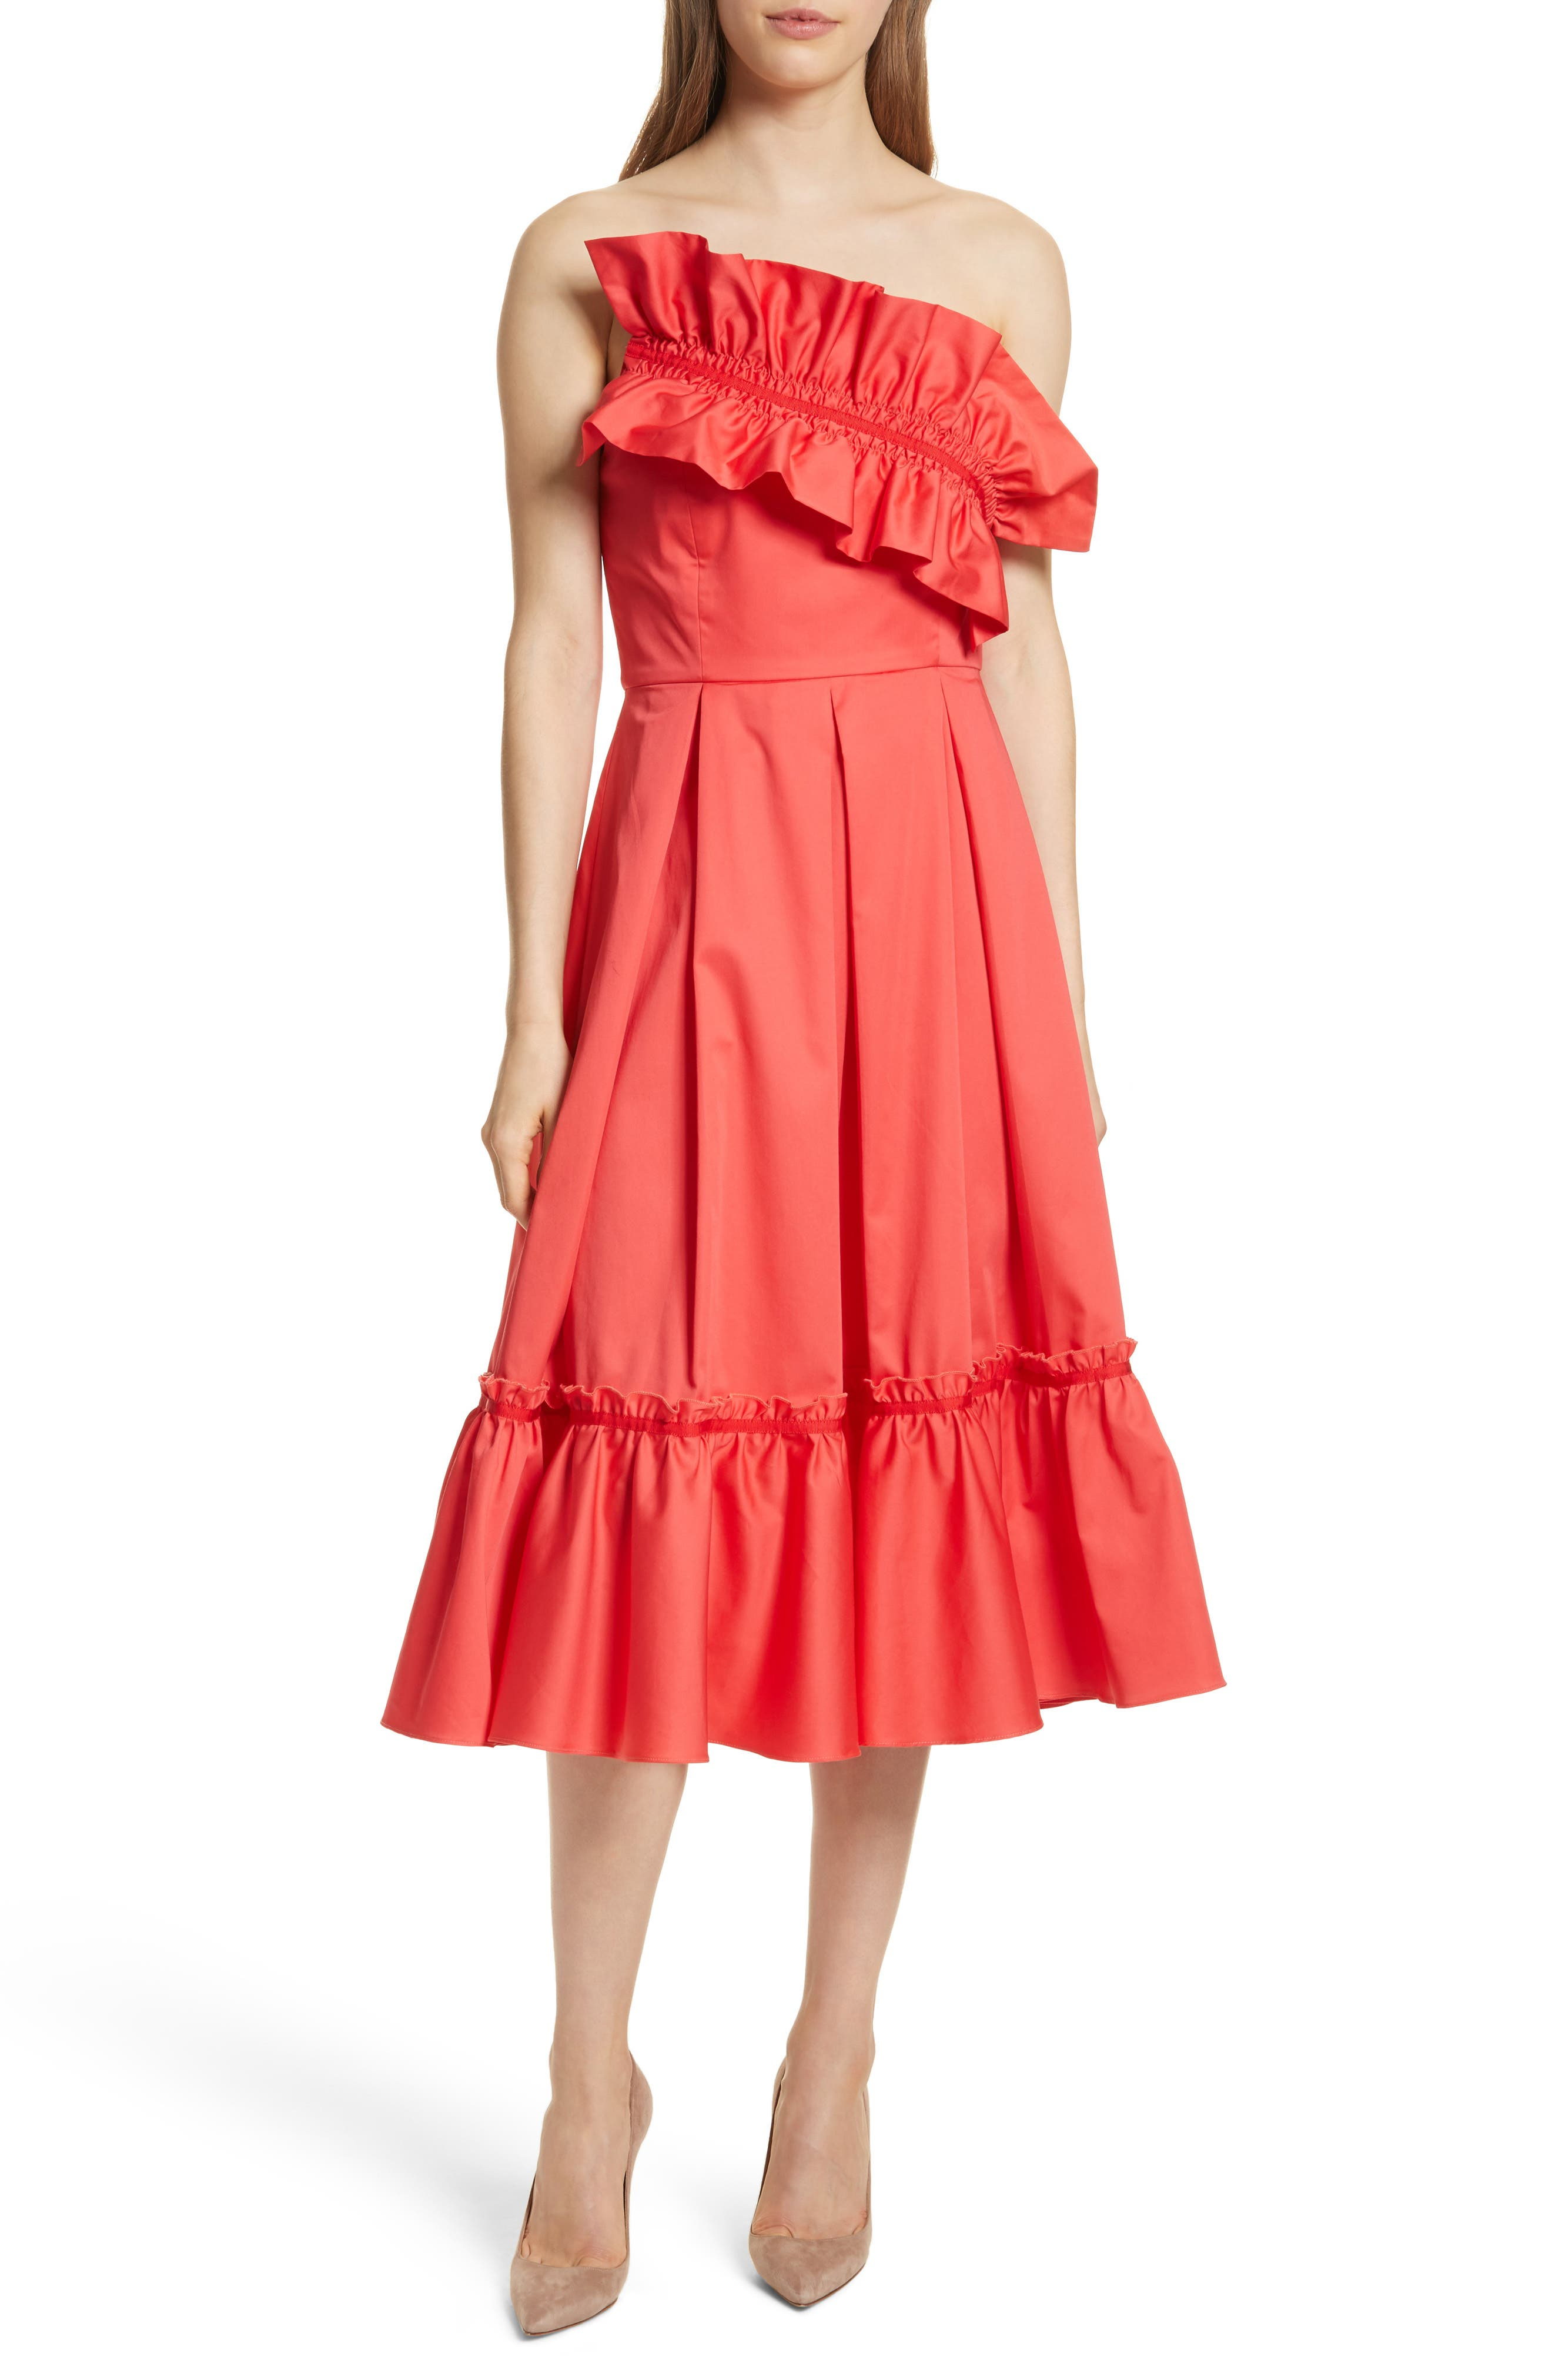 Prose & Poetry Harlow Ruffle Trim Strapless Dress,                             Main thumbnail 1, color,                             Watermelon